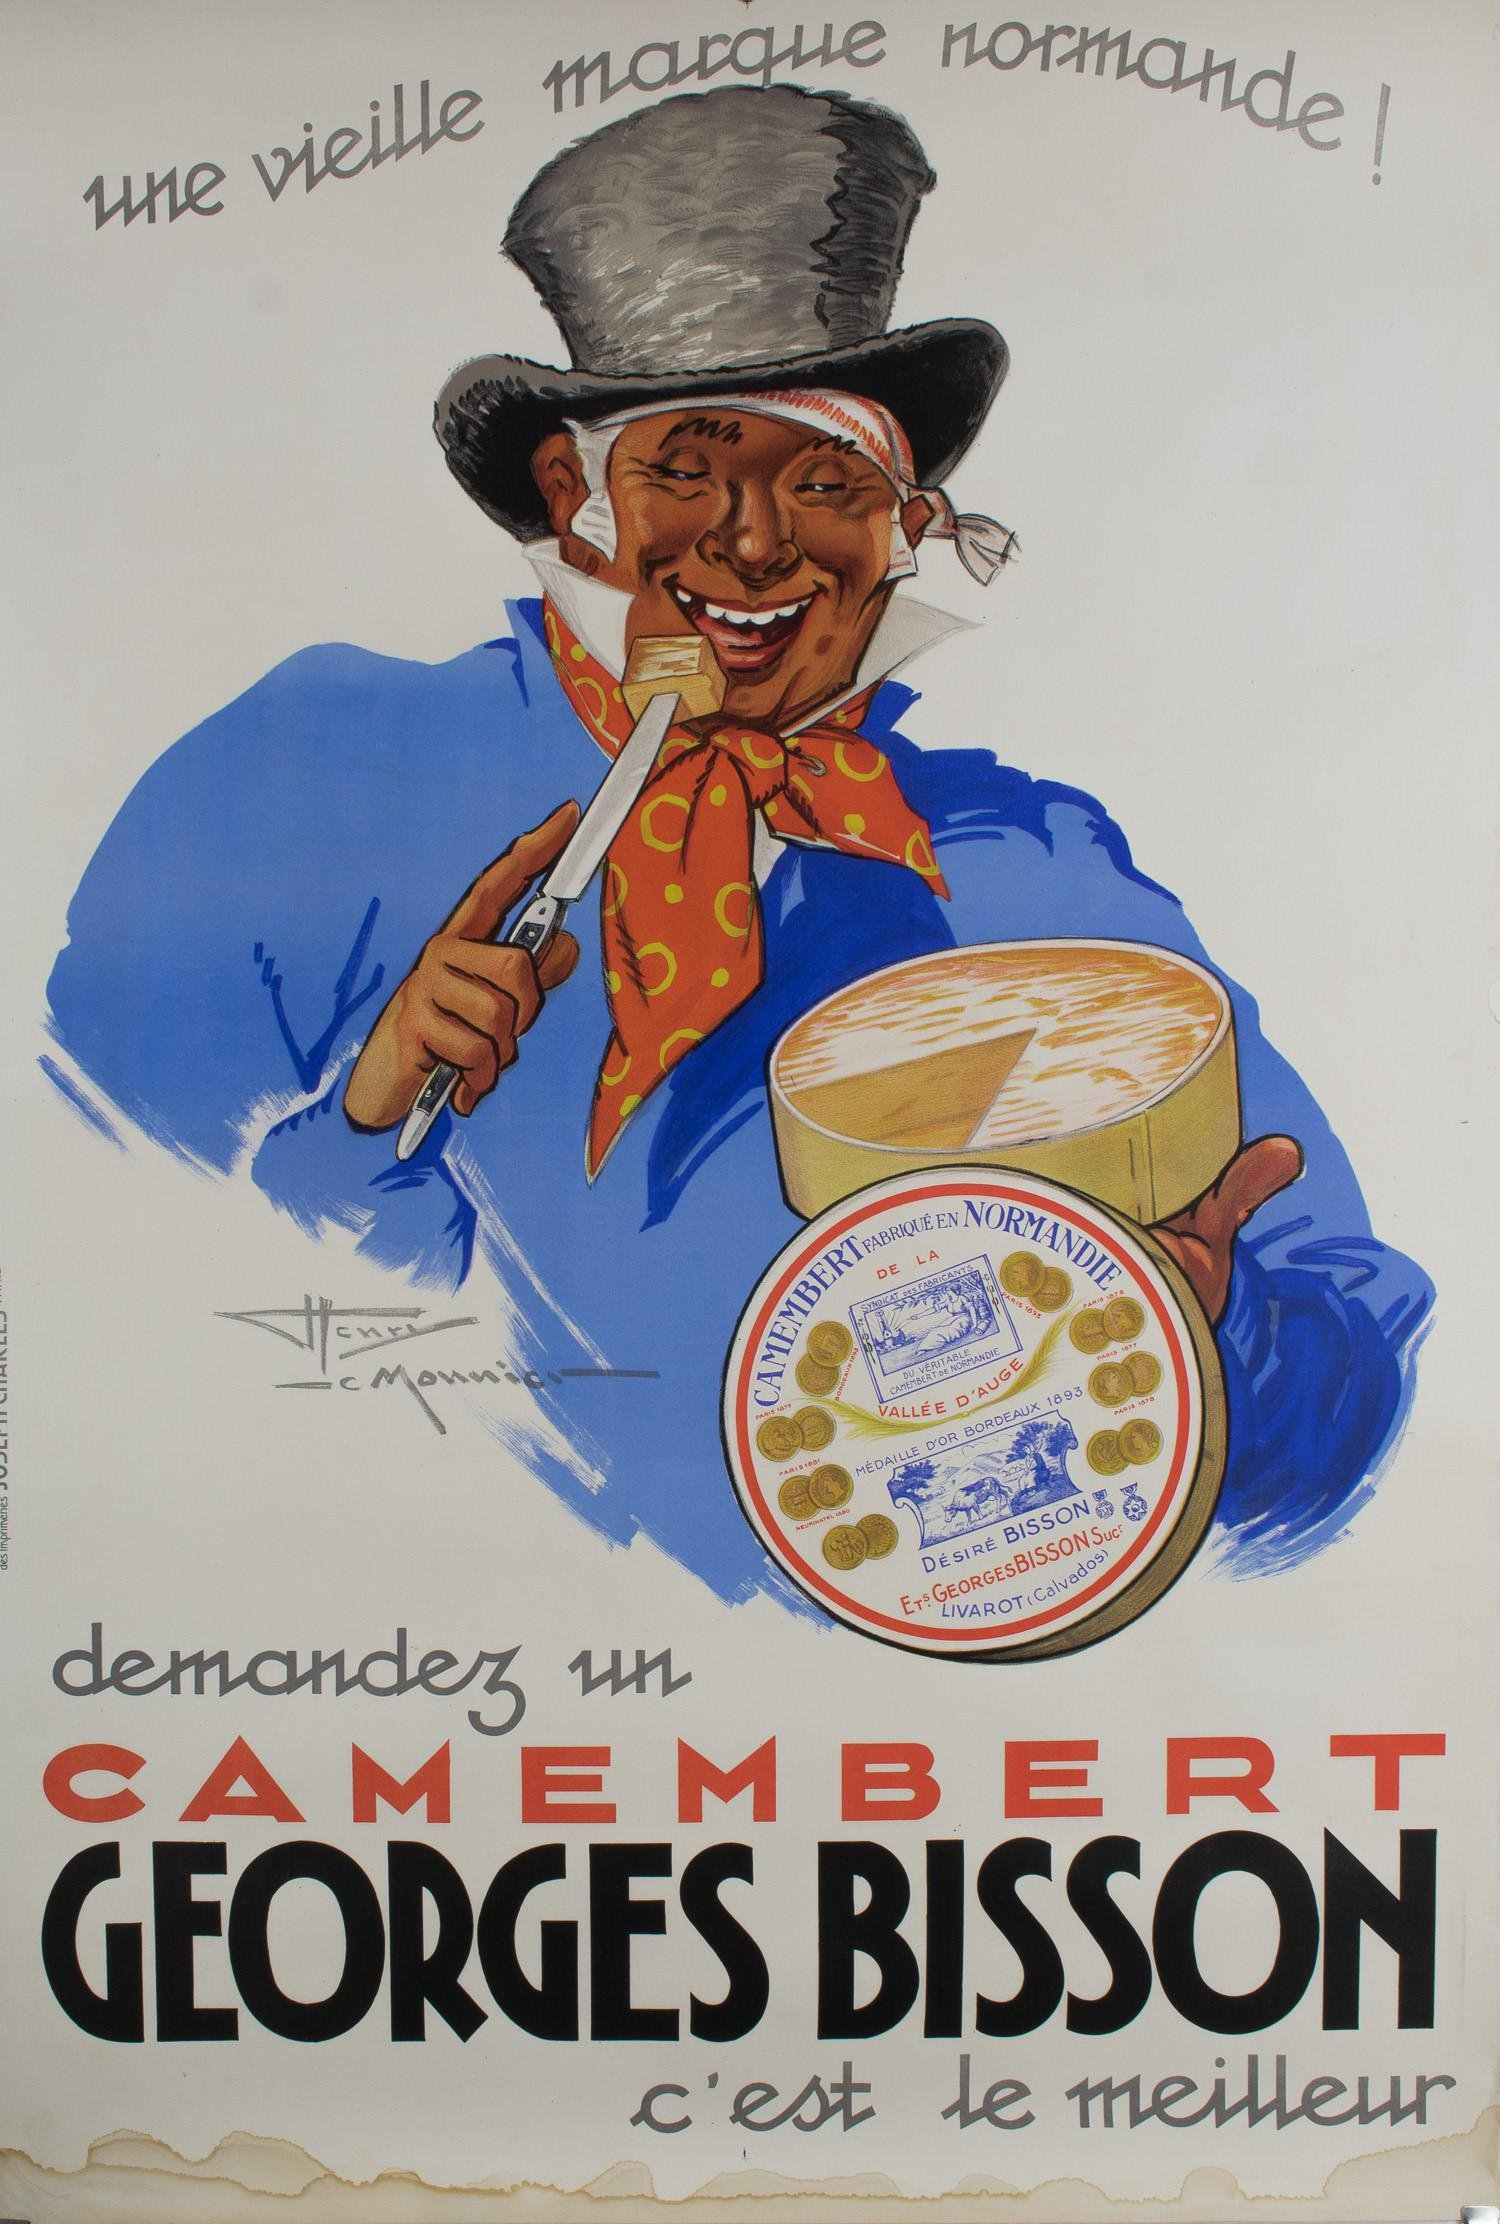 FRENCH ADVERTISING POSTER: GEORGES BISSON CAMEMBERT